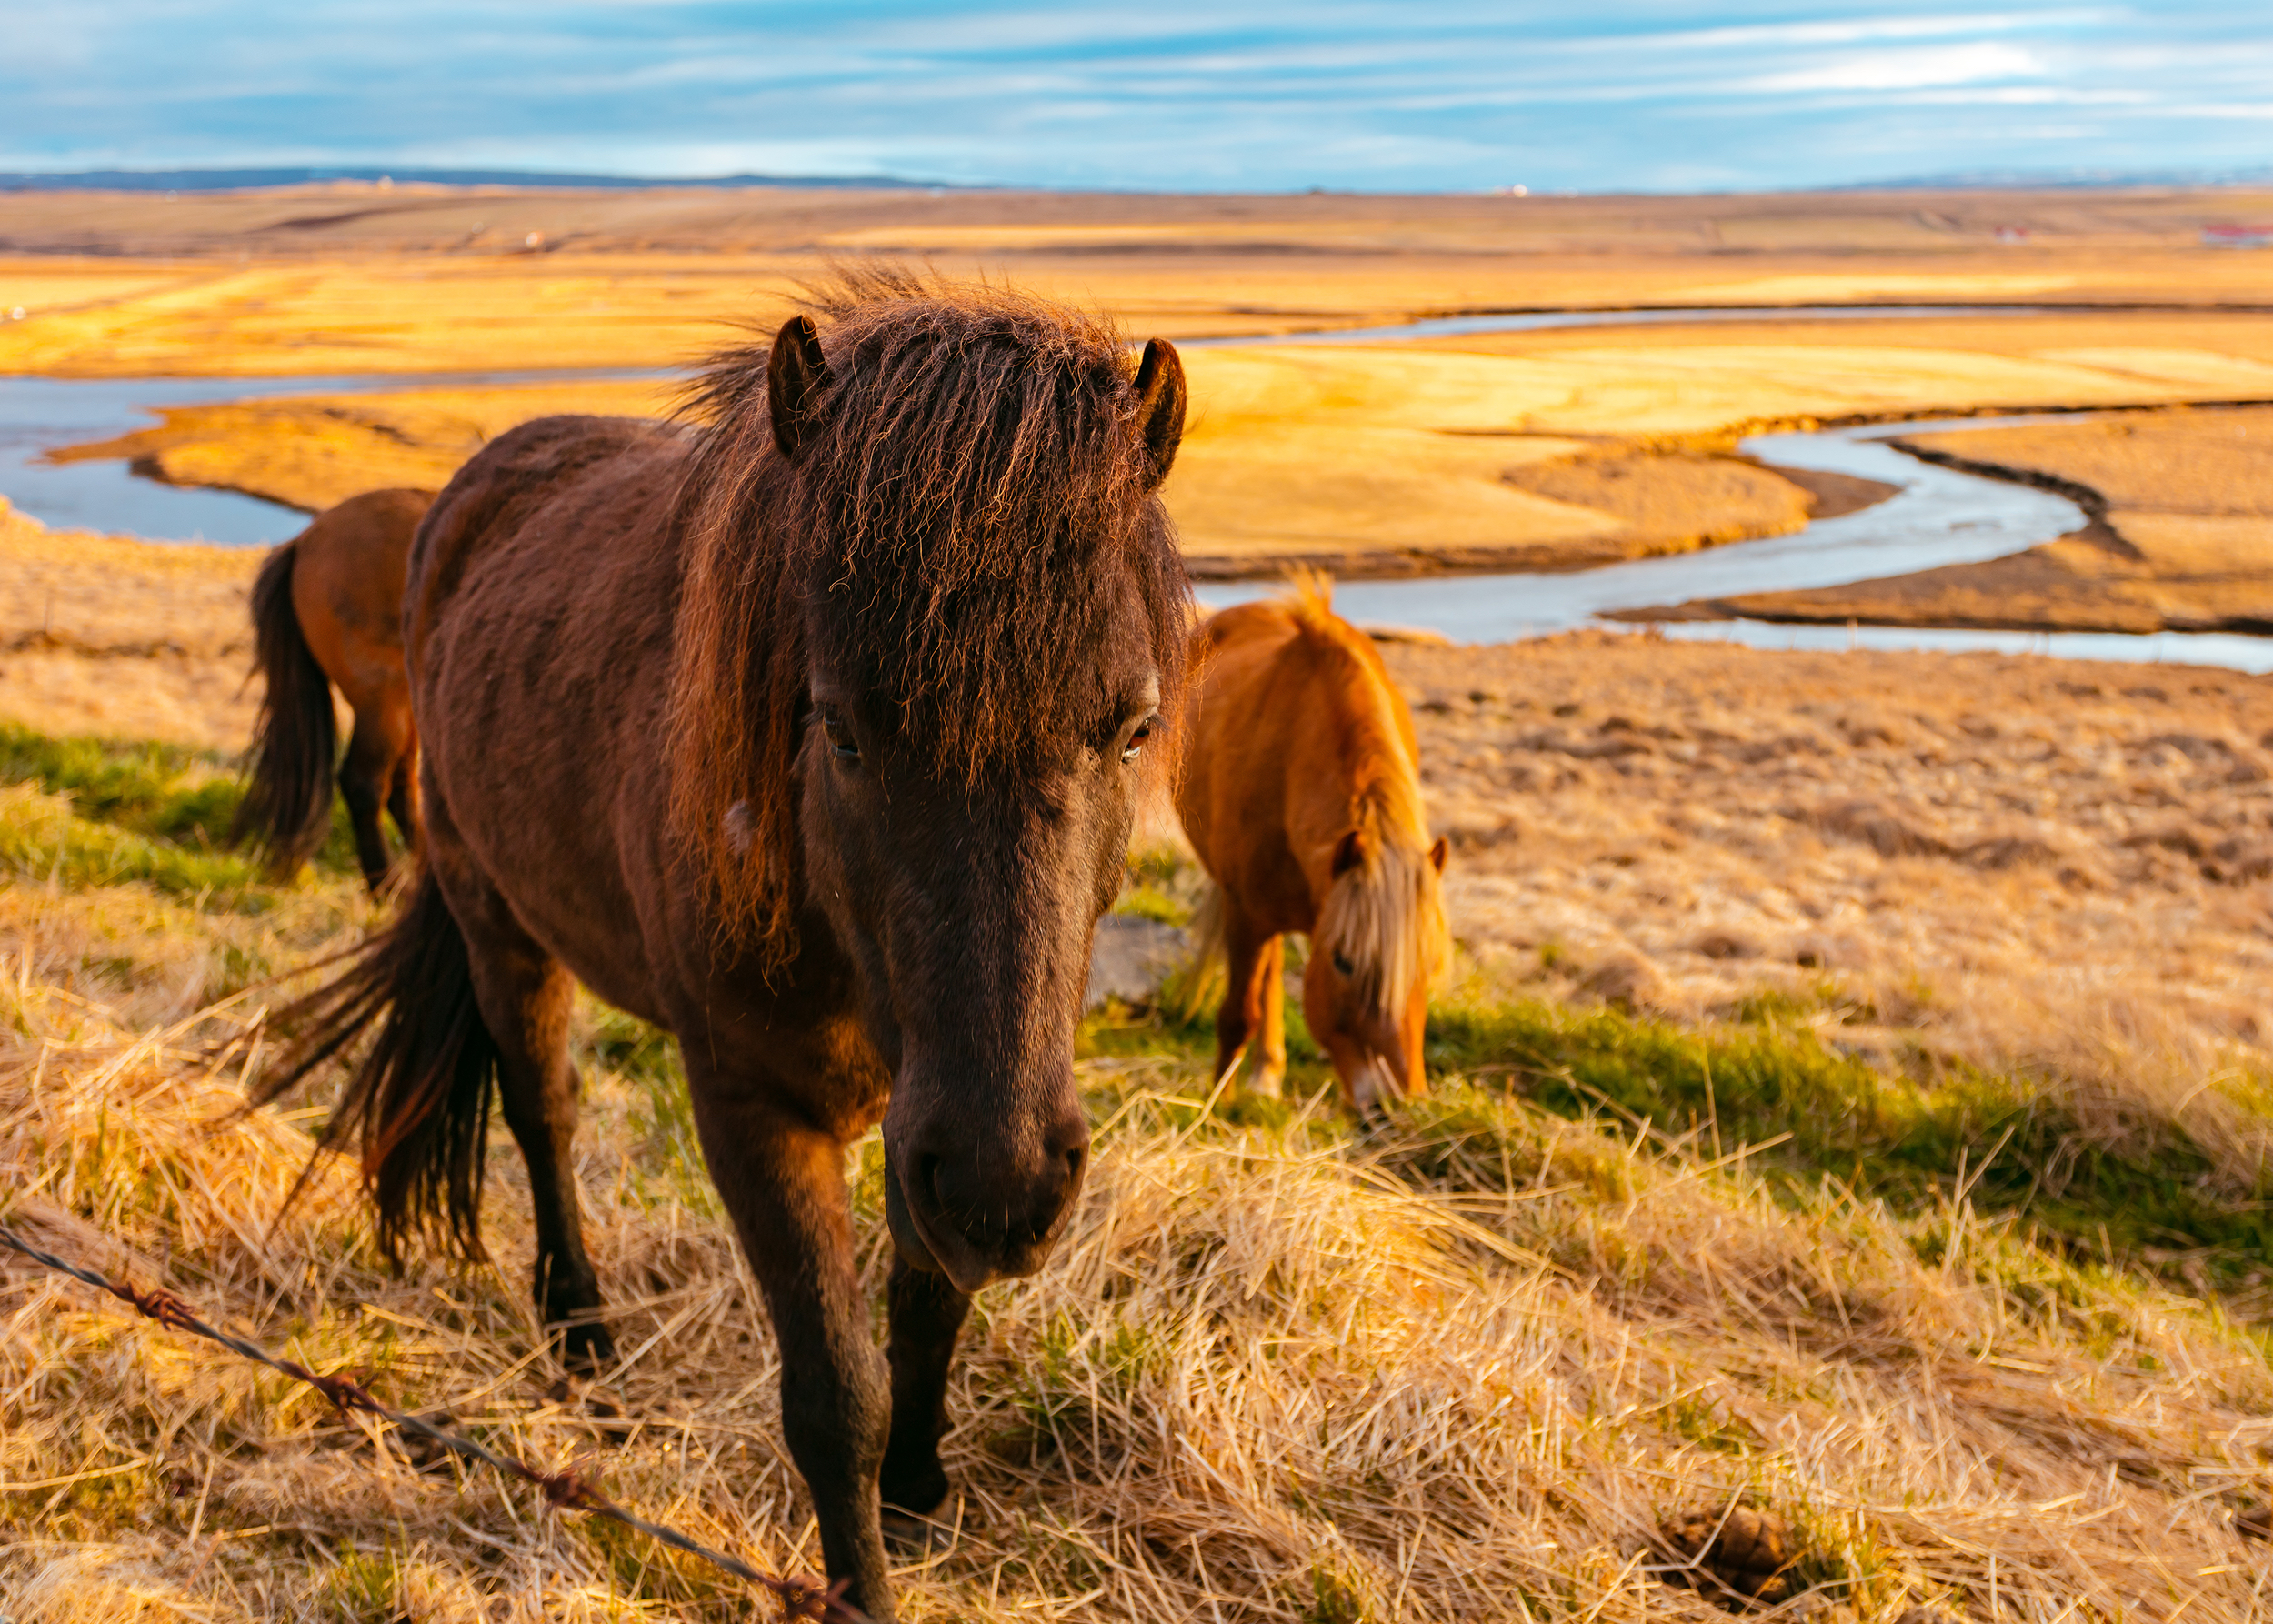 146048 download wallpaper Animals, Horses, Grass, Field screensavers and pictures for free